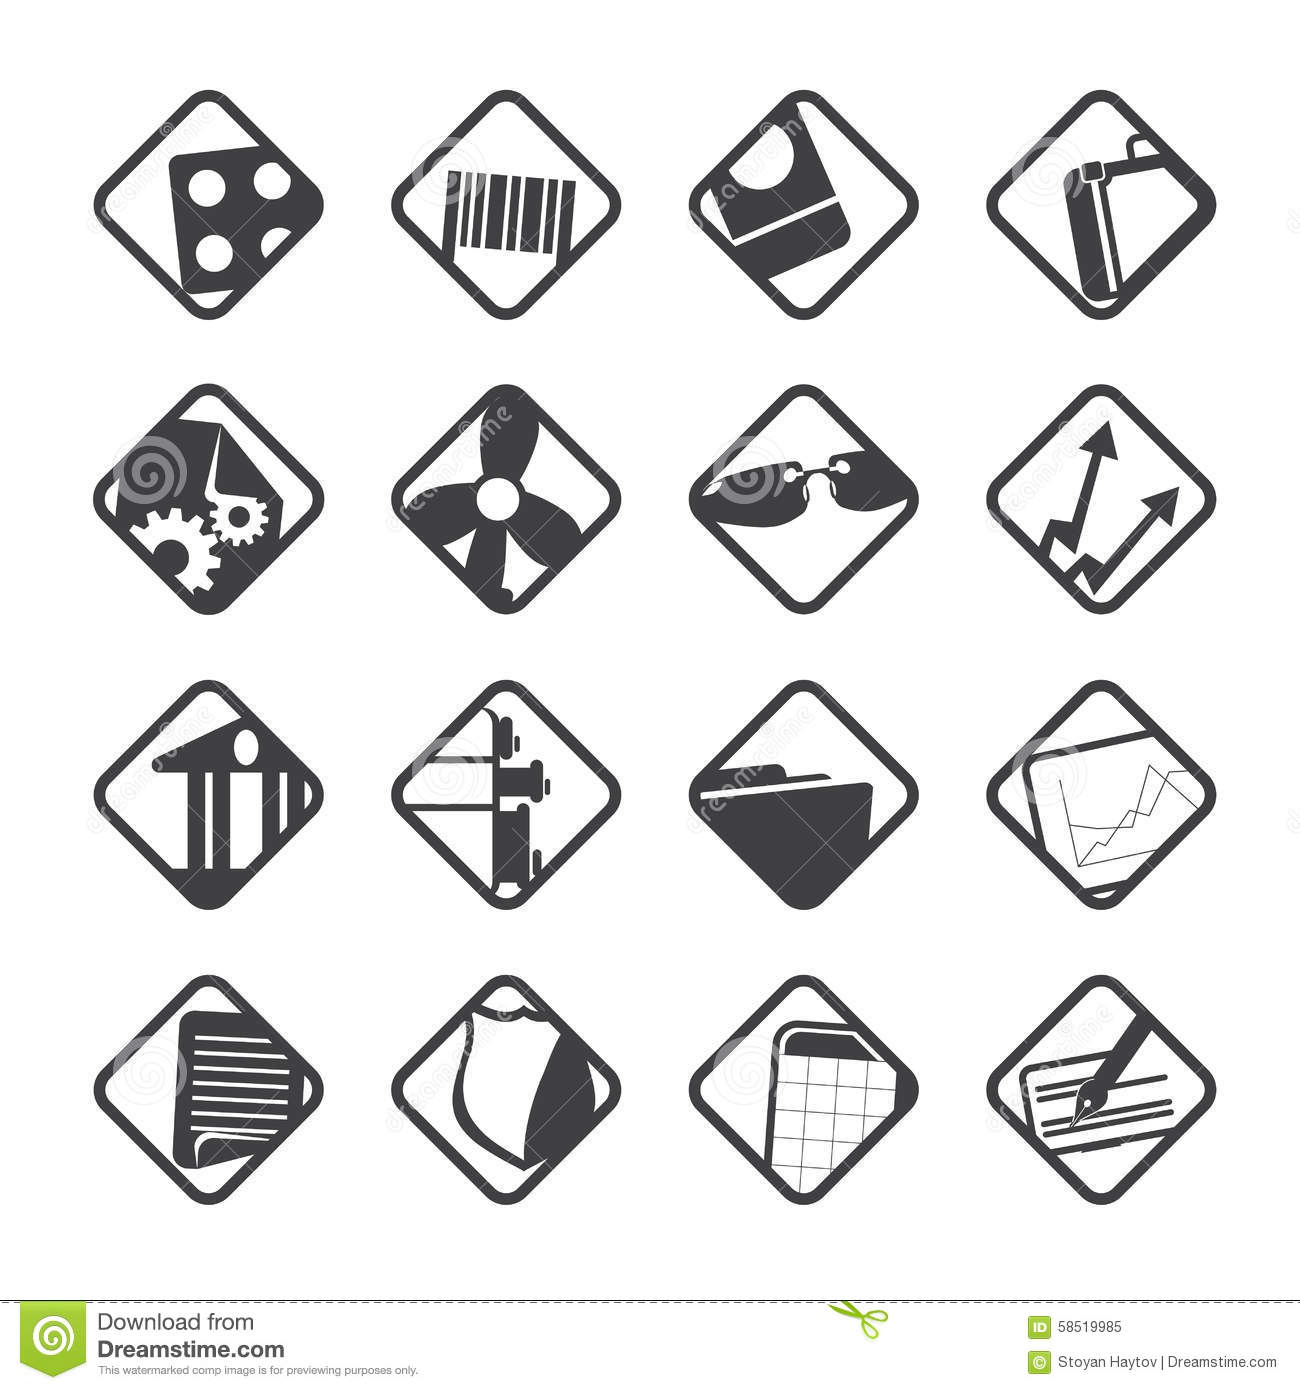 silhouette business and office icons stock vector